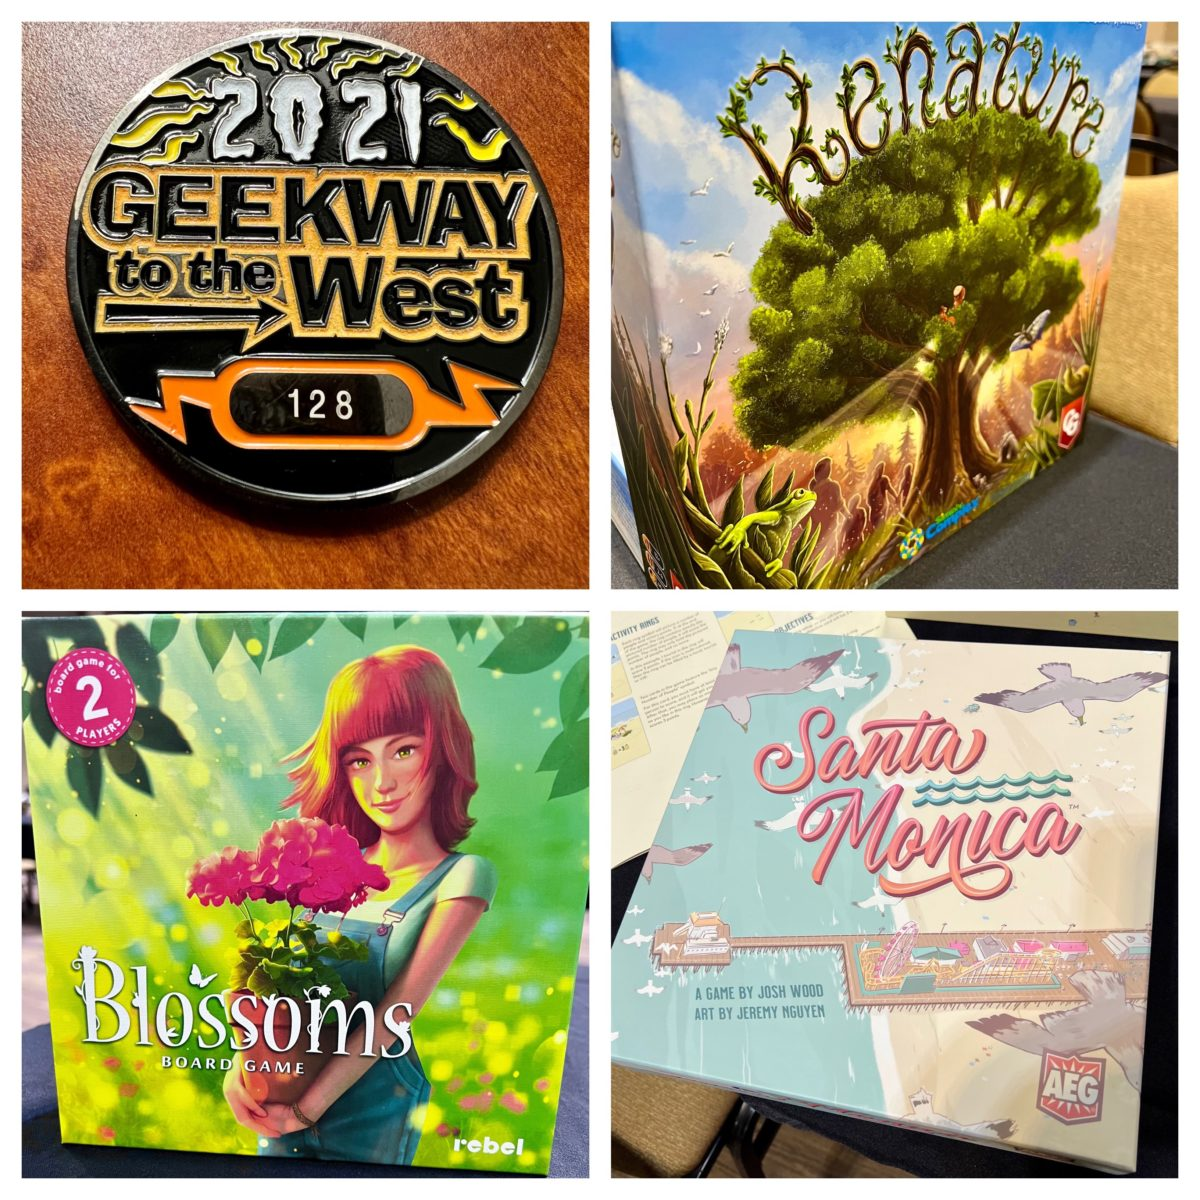 Geekway 2021: Day 1, Monday